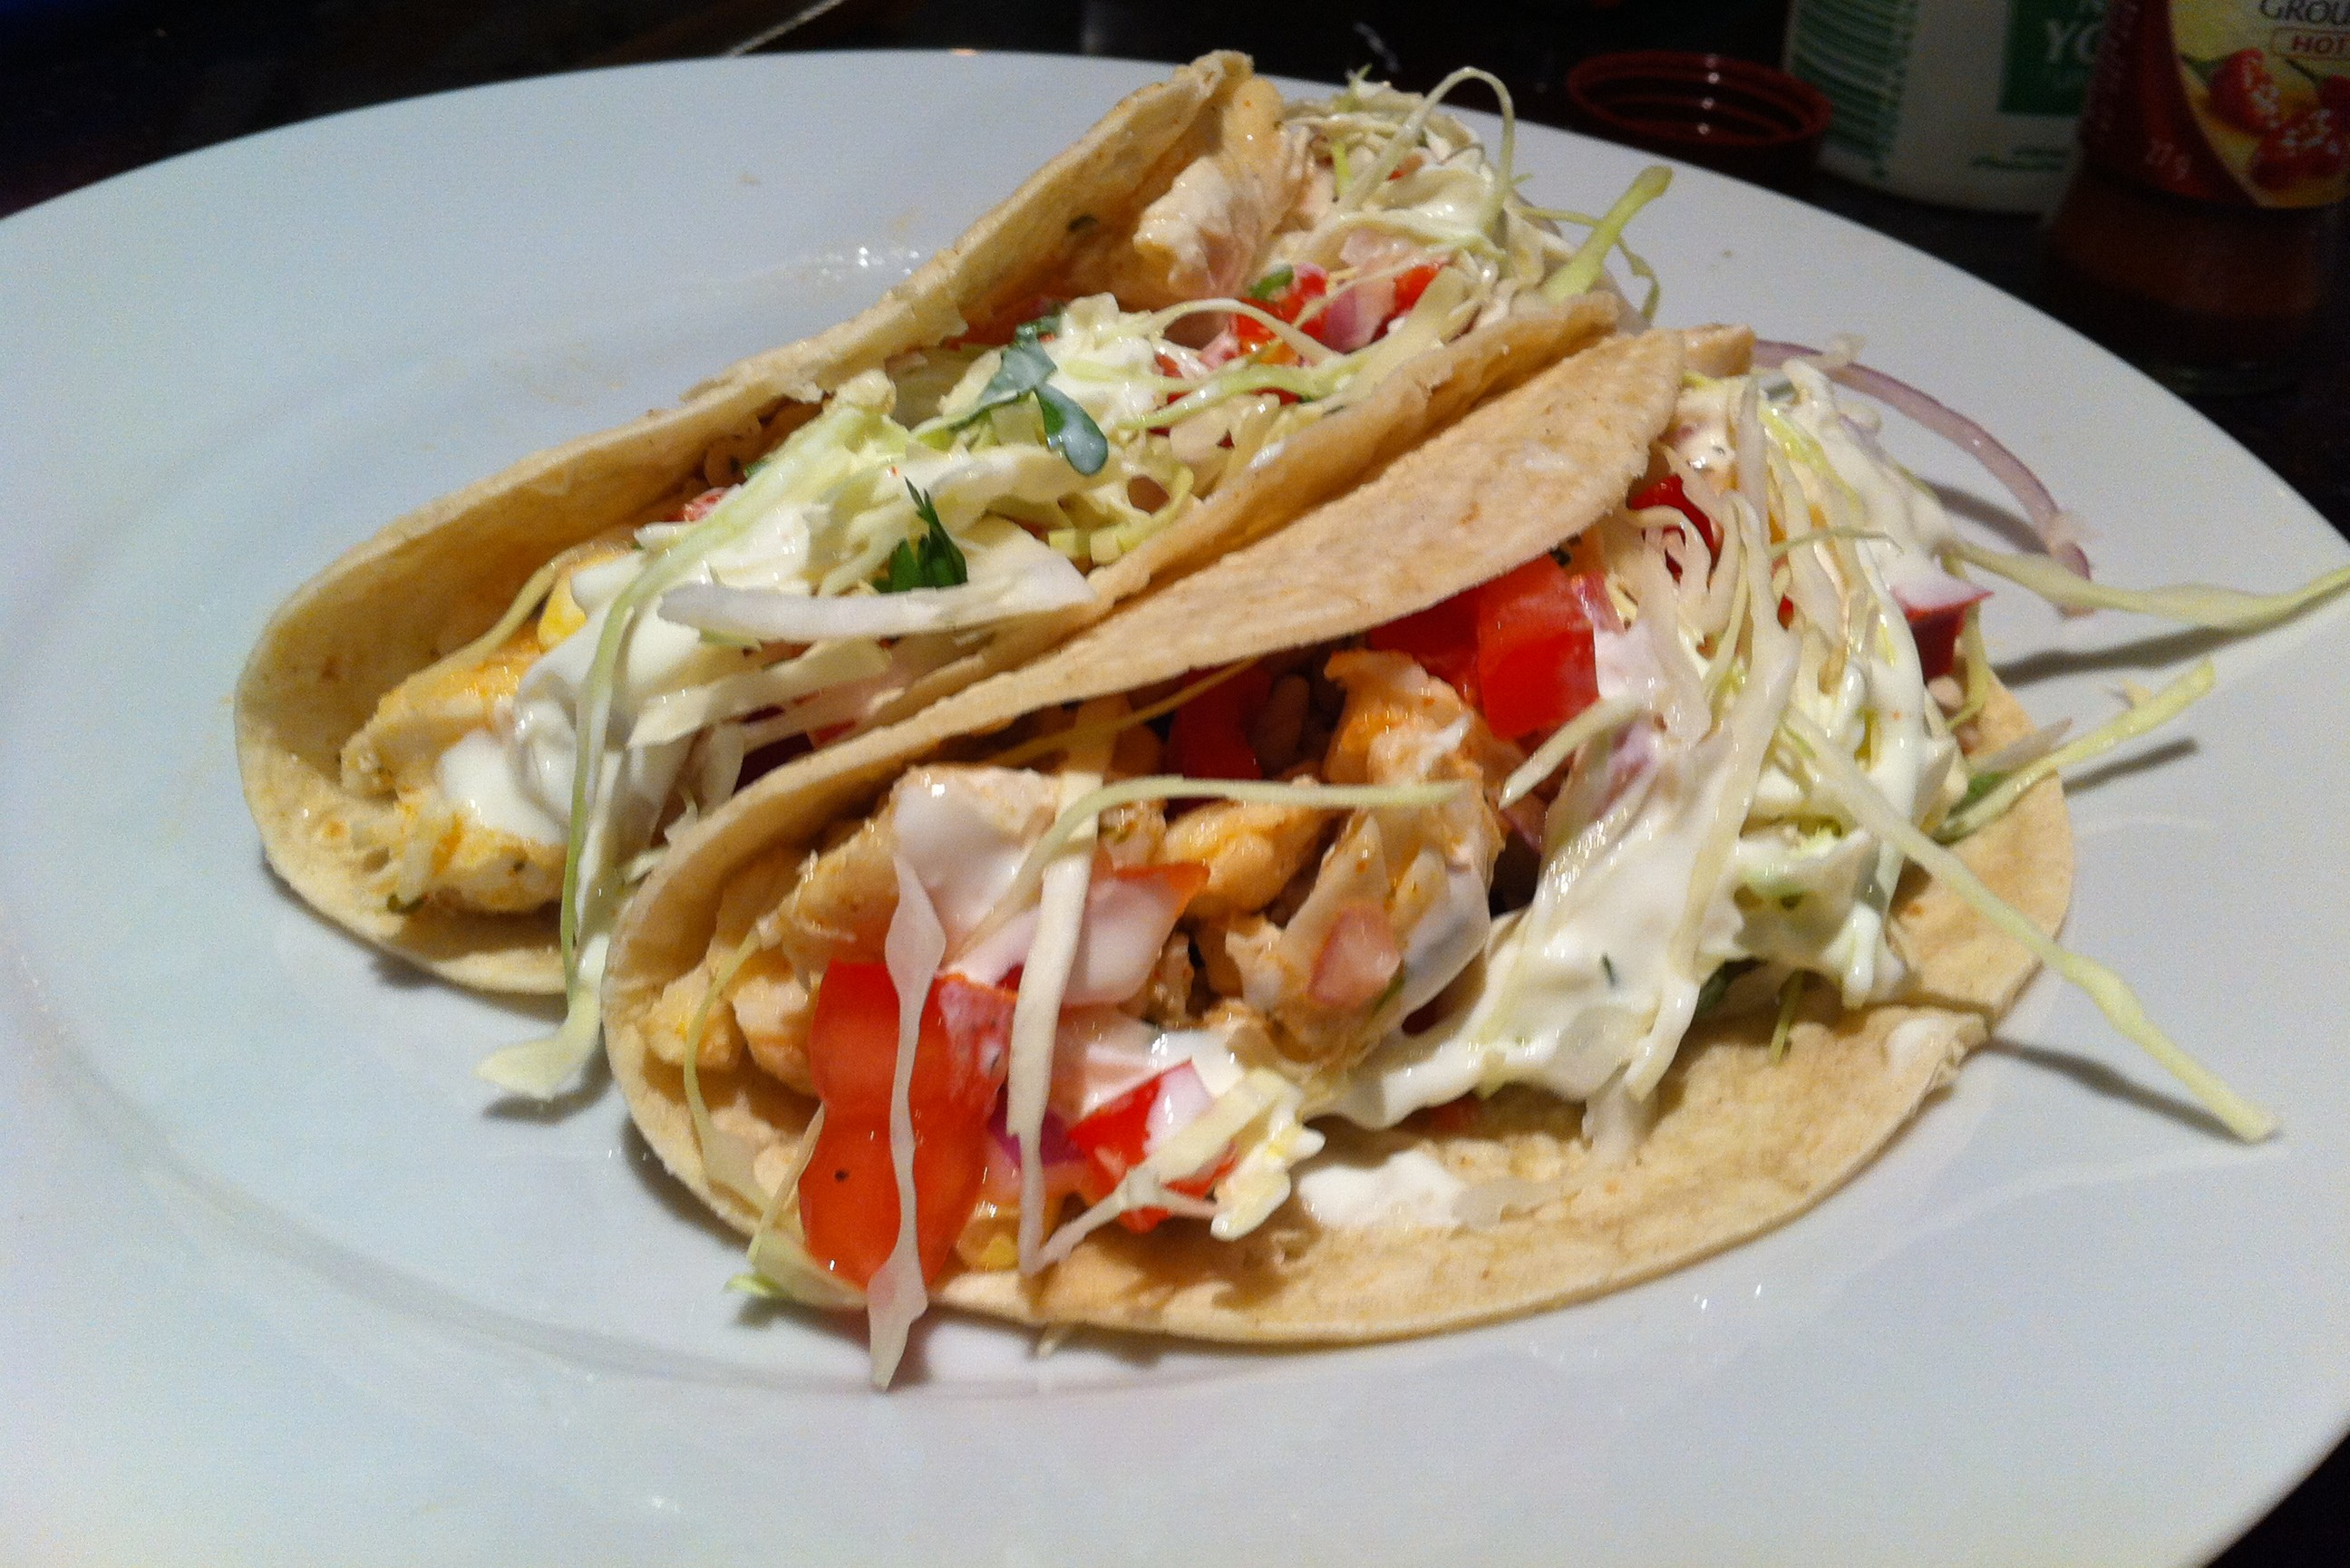 What do you order at taco bell ign boards for Taco bell fish tacos